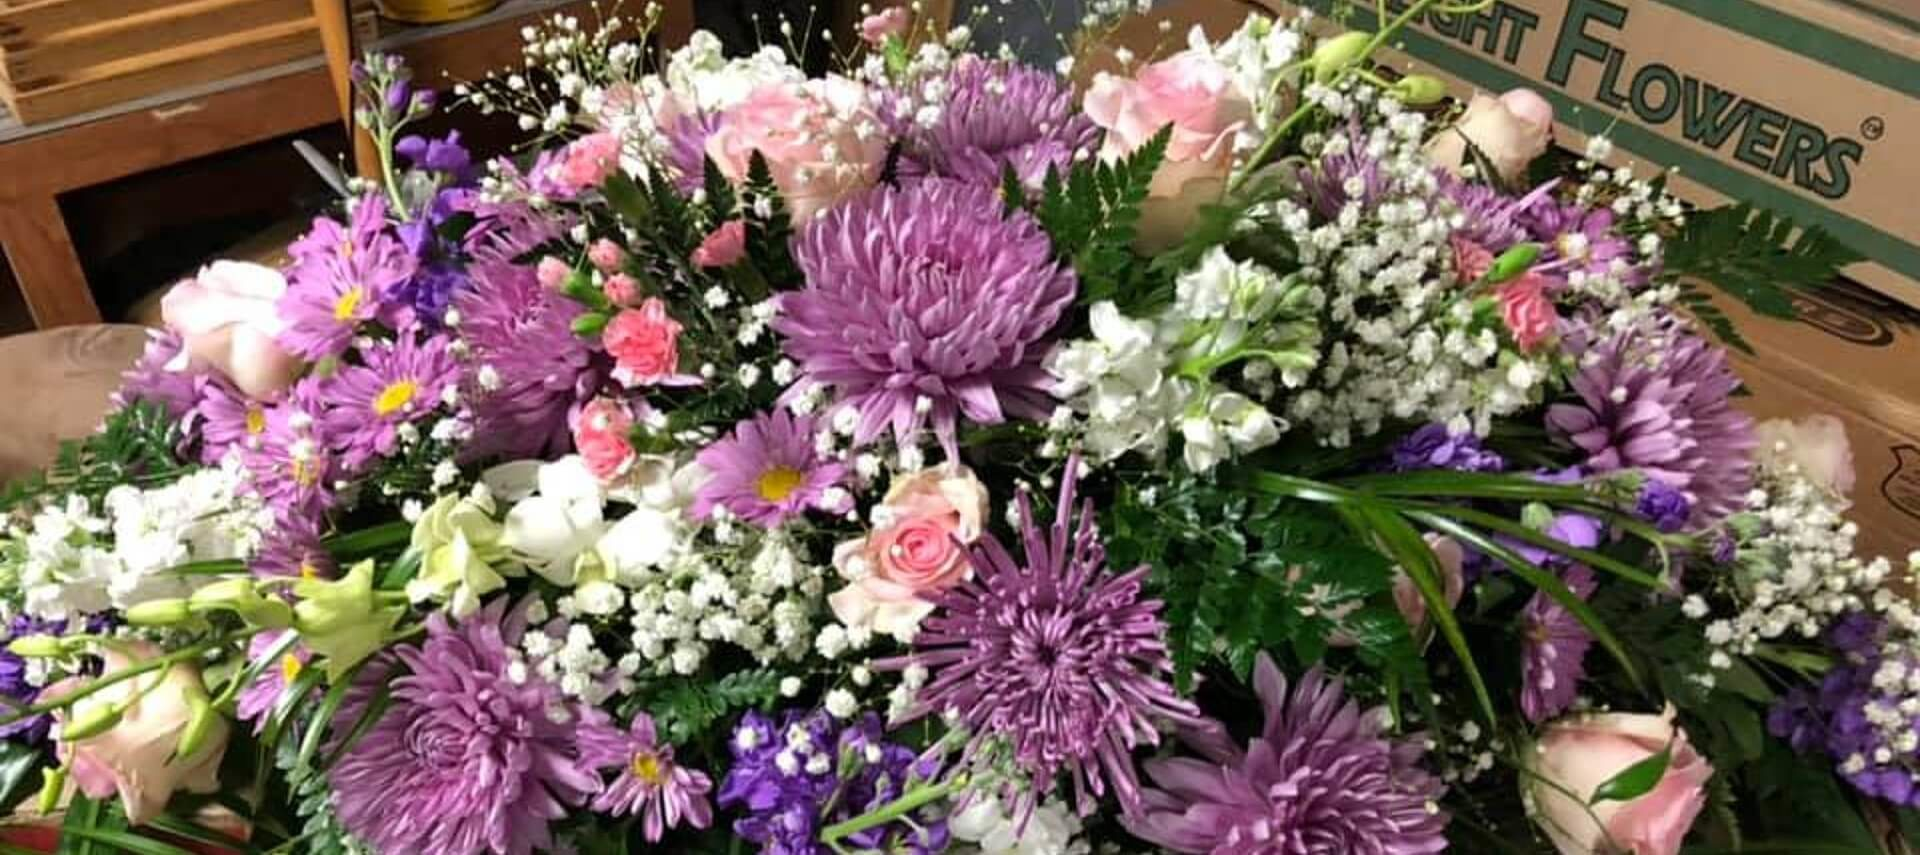 Huge bouquet of white, pink and purple flowers with greenery and baby's breath